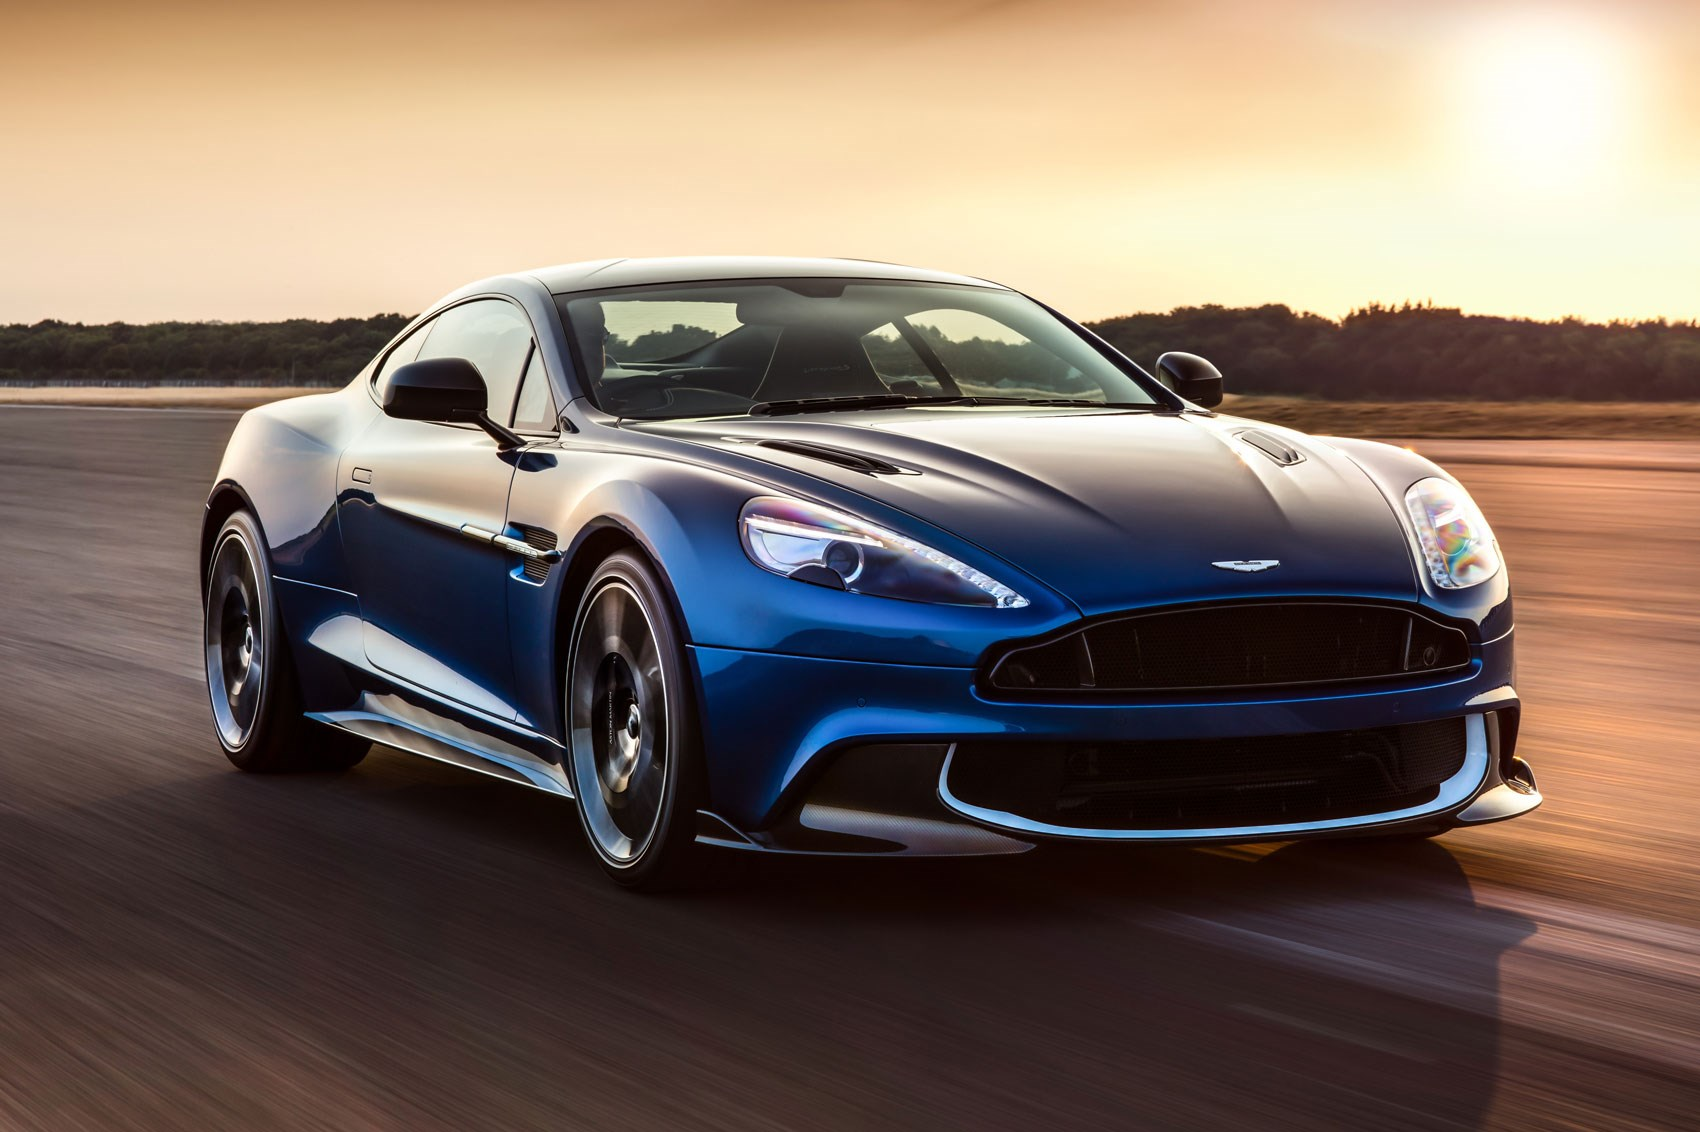 aston martin unveils 595bhp vanquish s by car magazine. Black Bedroom Furniture Sets. Home Design Ideas